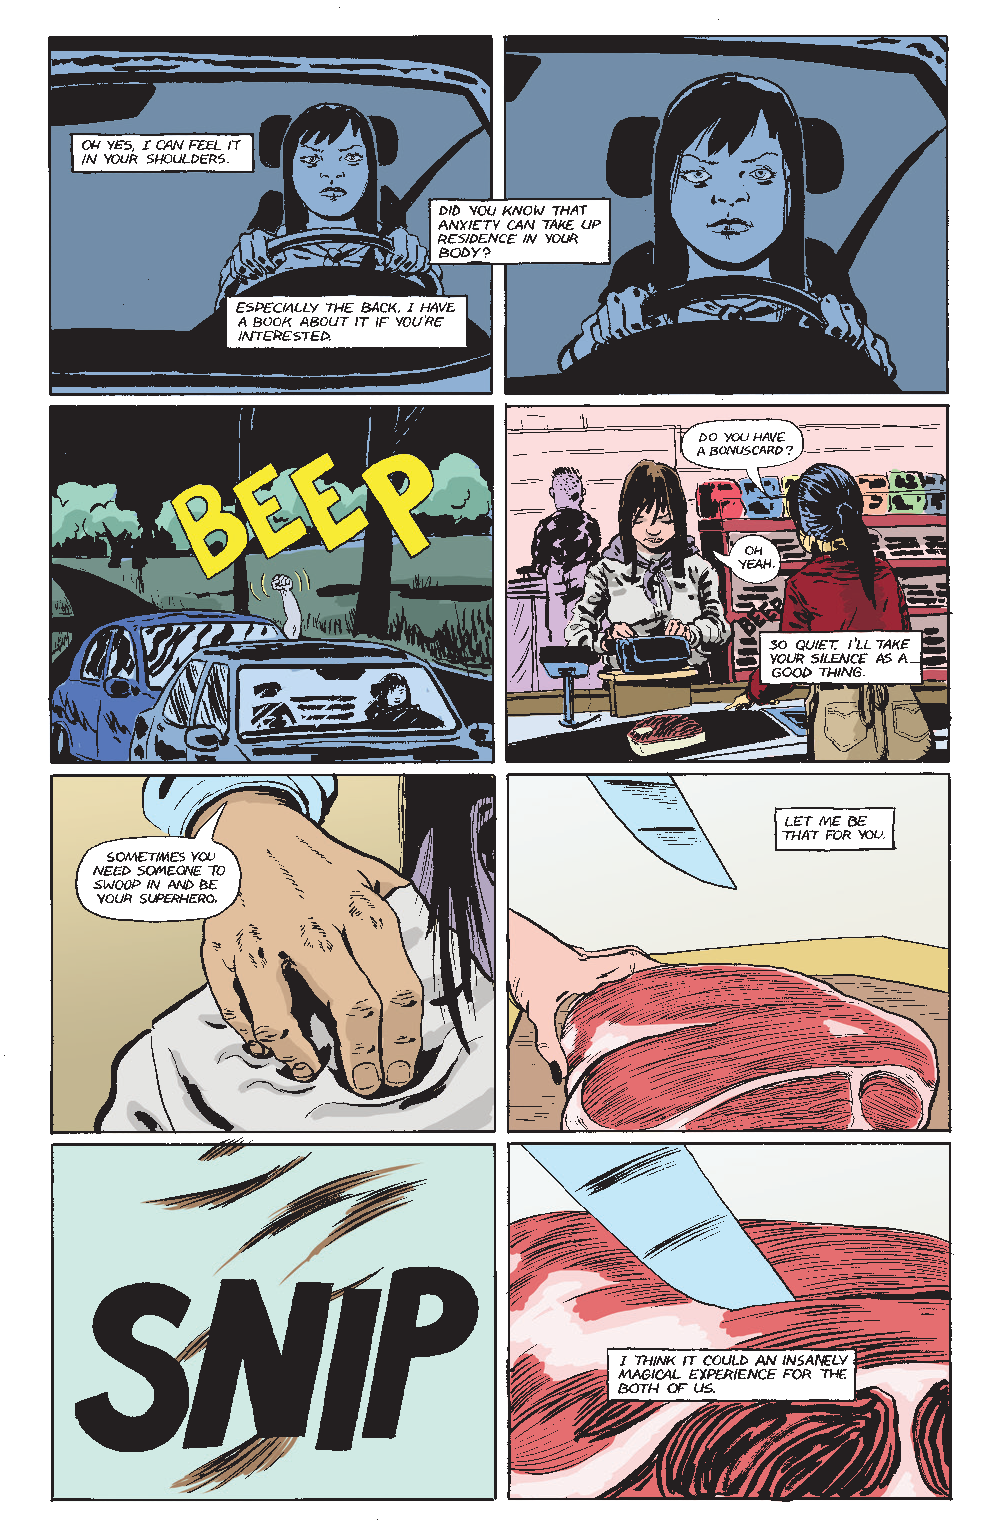 Slasher1 preview5_Page_5.png